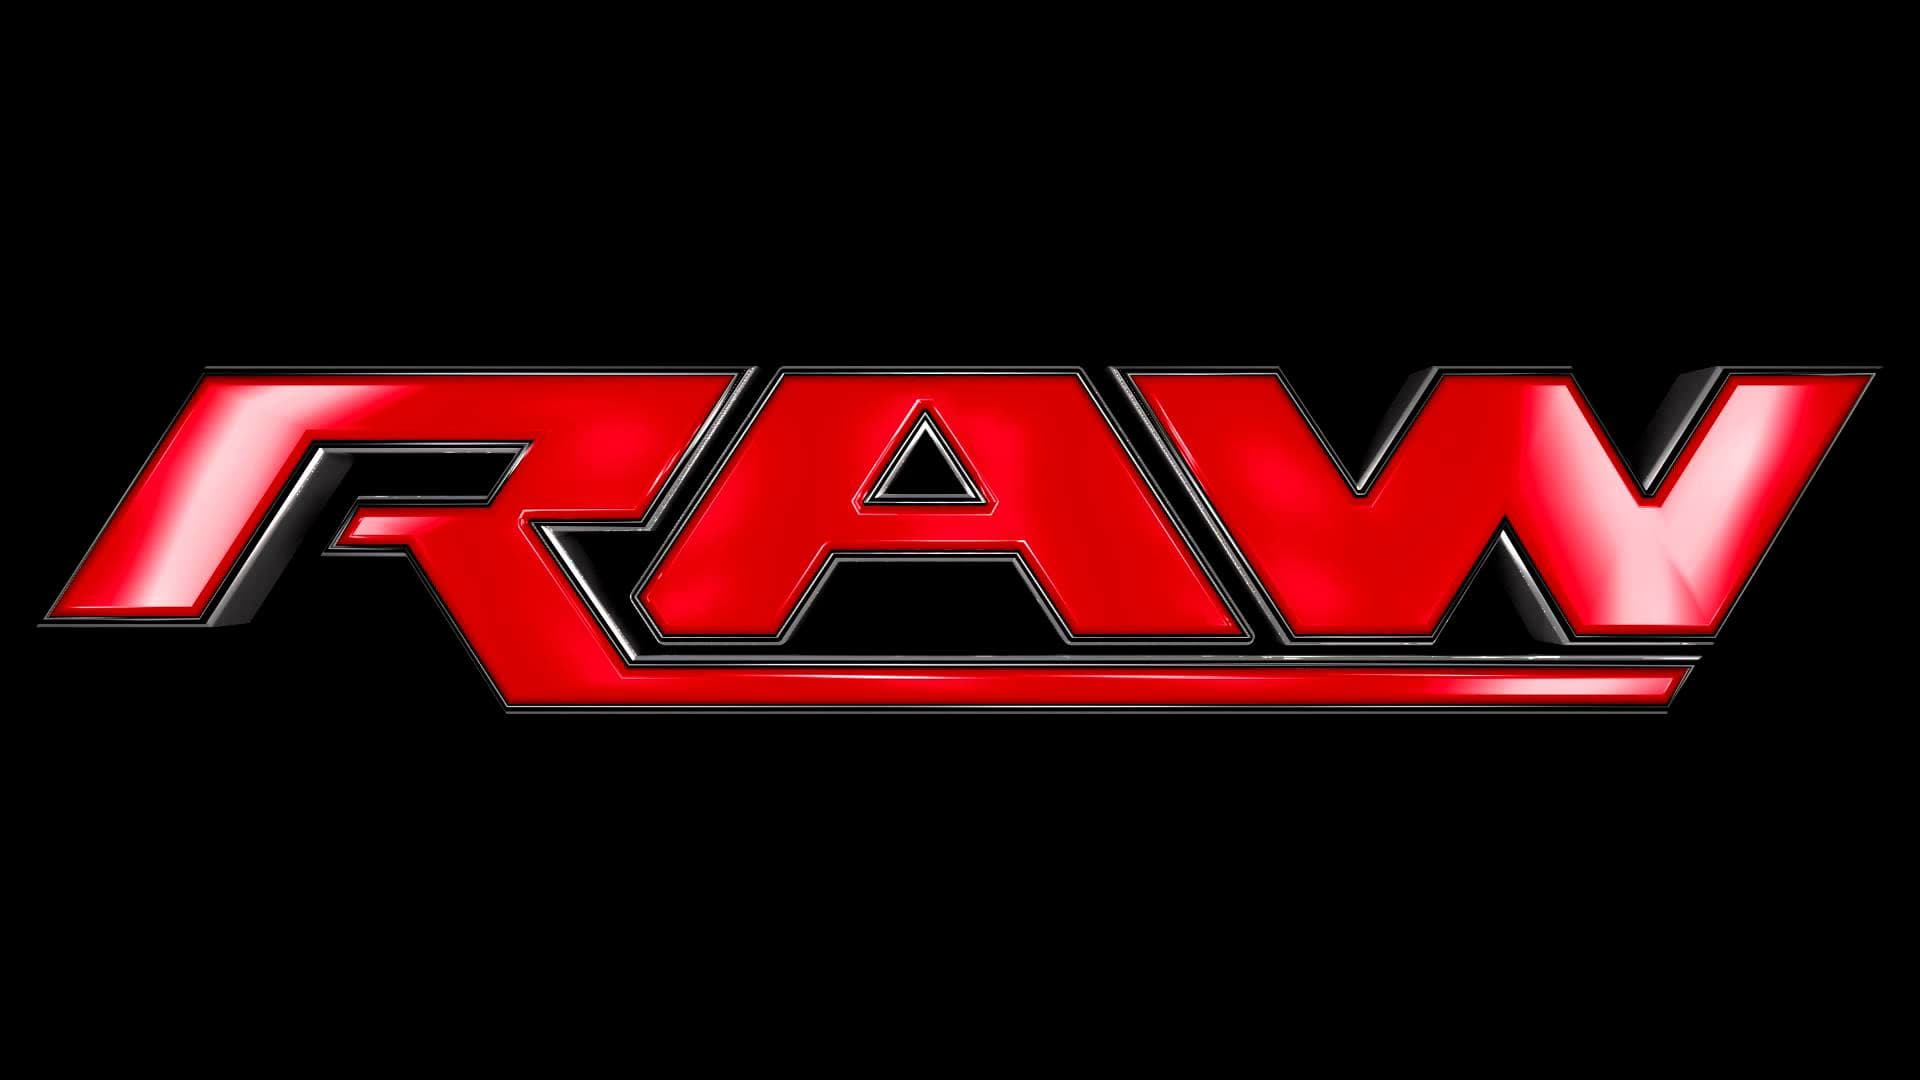 WWE Raw - Season 6 Episode 19 : RAW is WAR 259